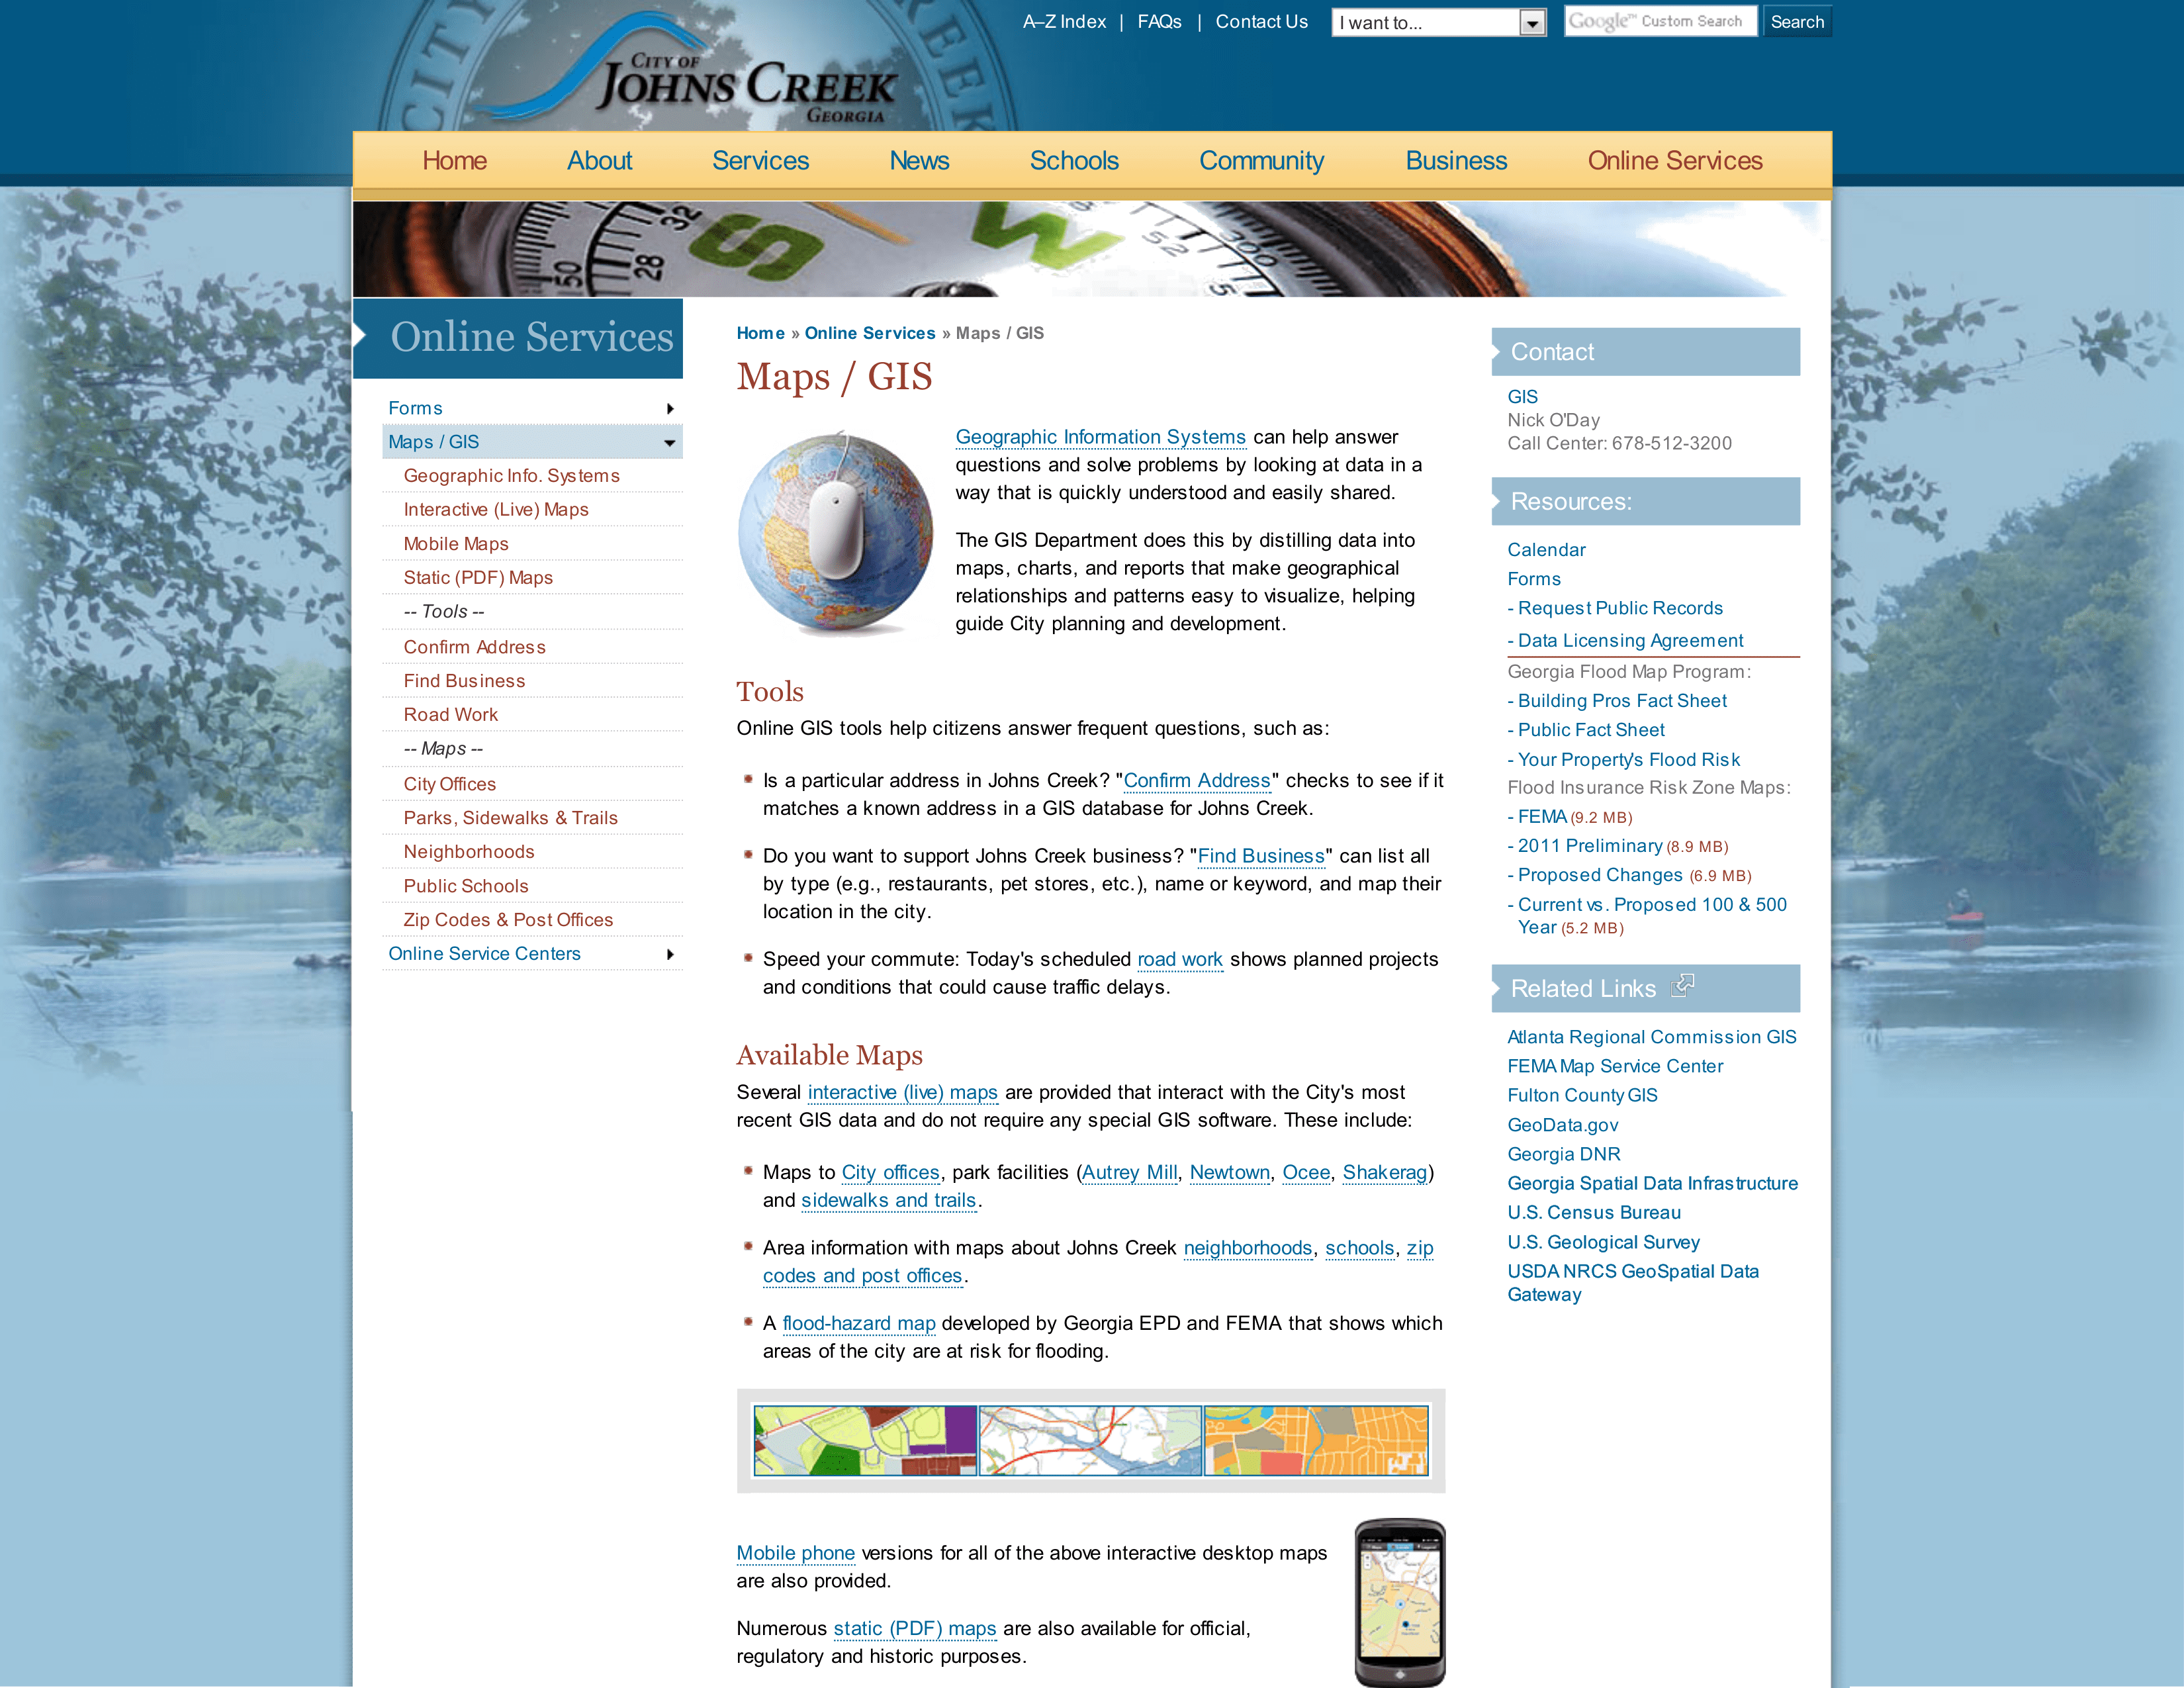 This is the GIS homepage in the City of Johns Creek, GA's website describing to visitors what GIS is and the web tools available to users.